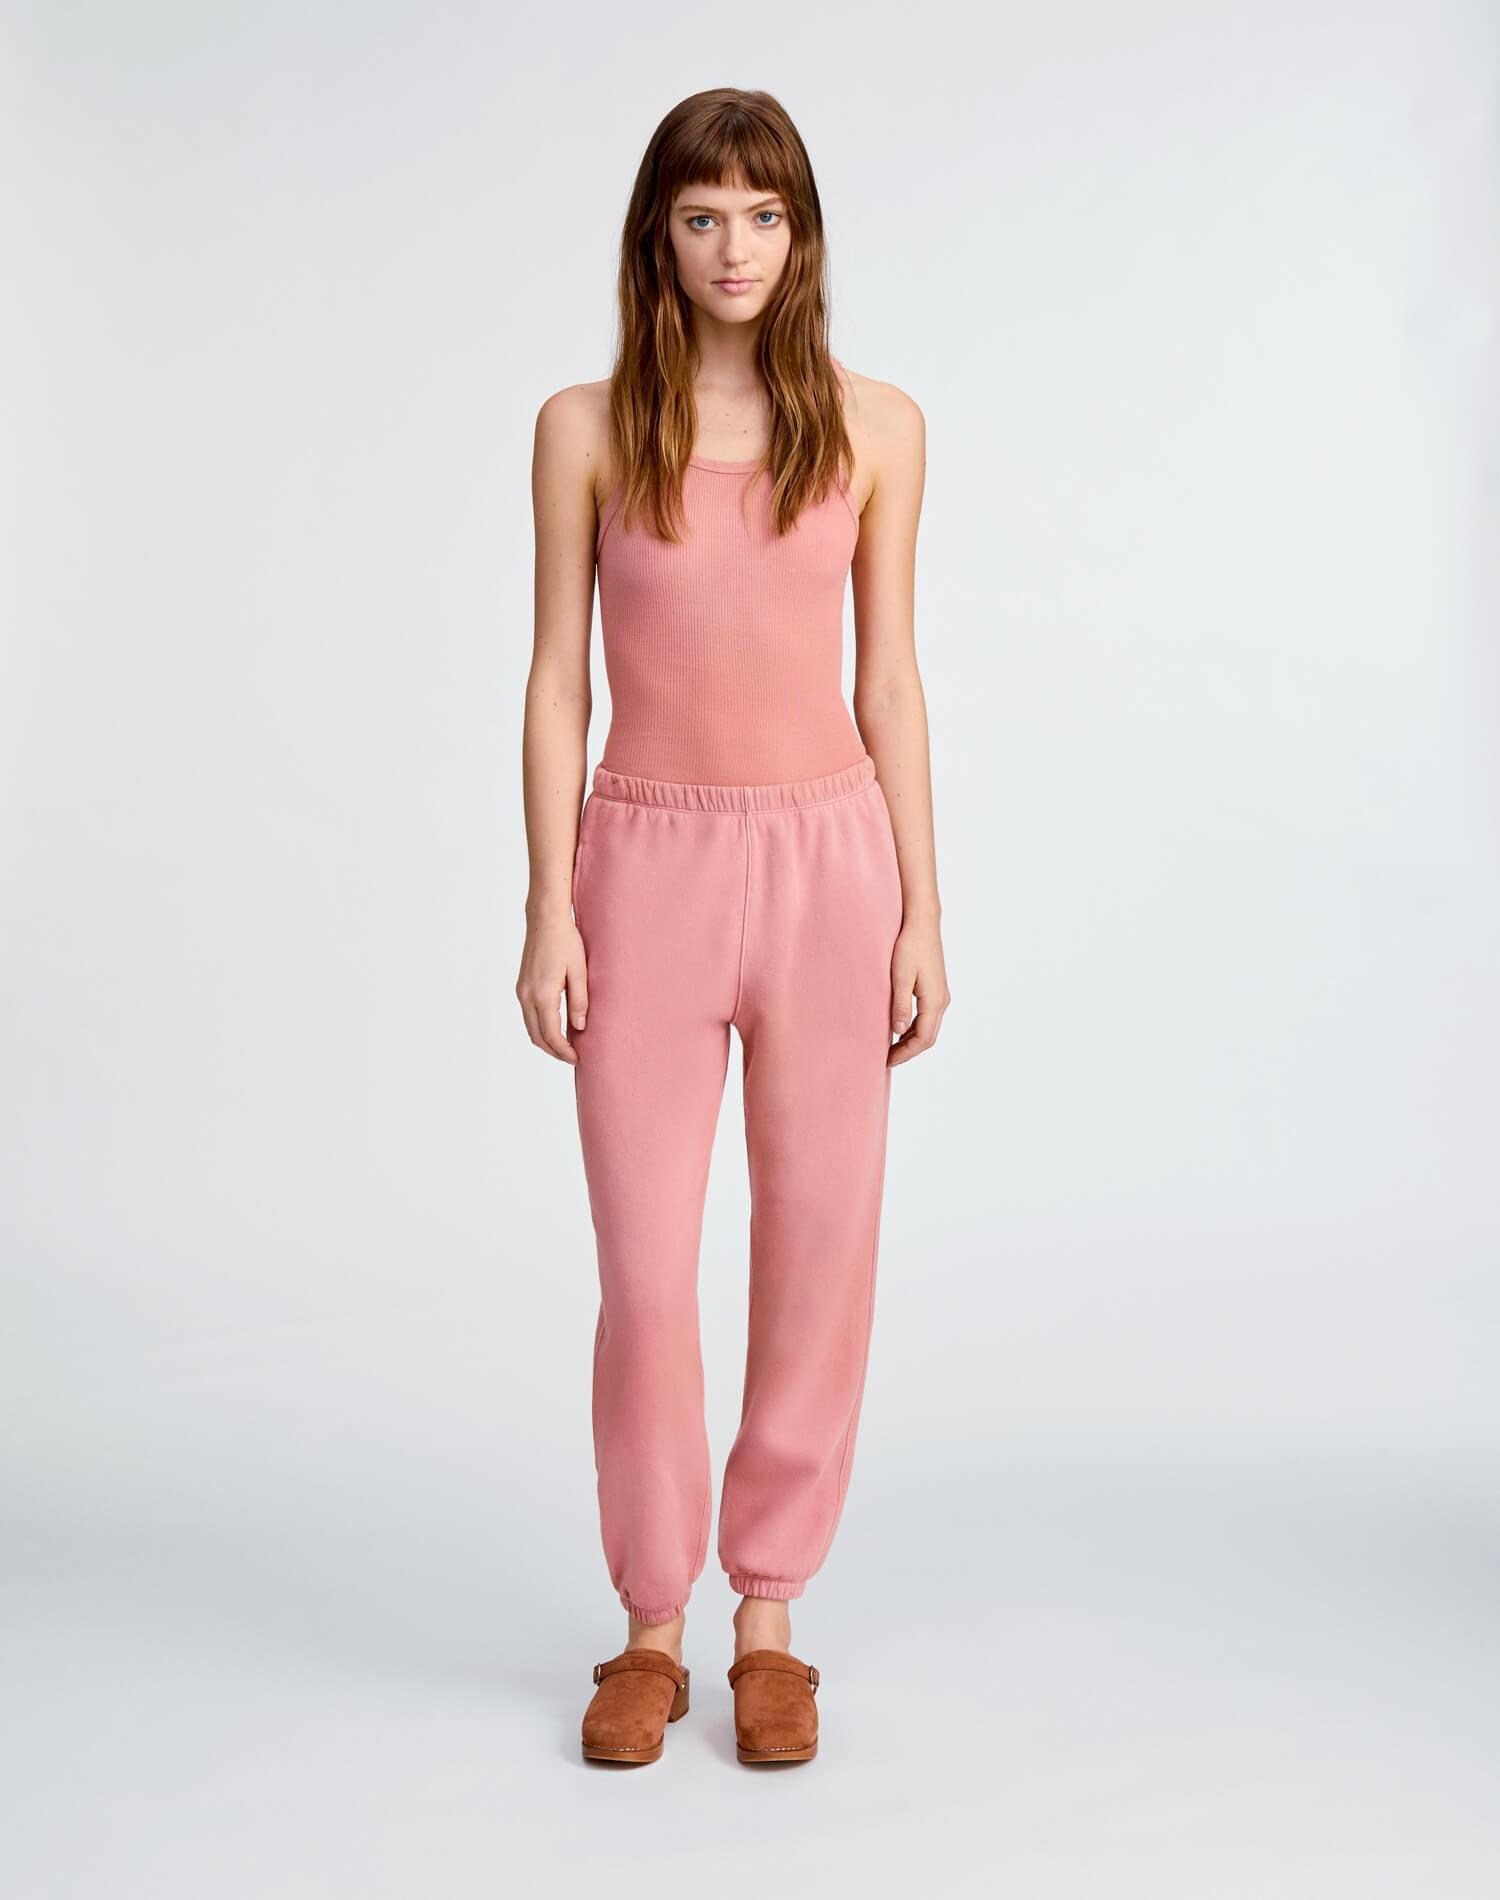 80s Sweatpant - Faded Clay 1